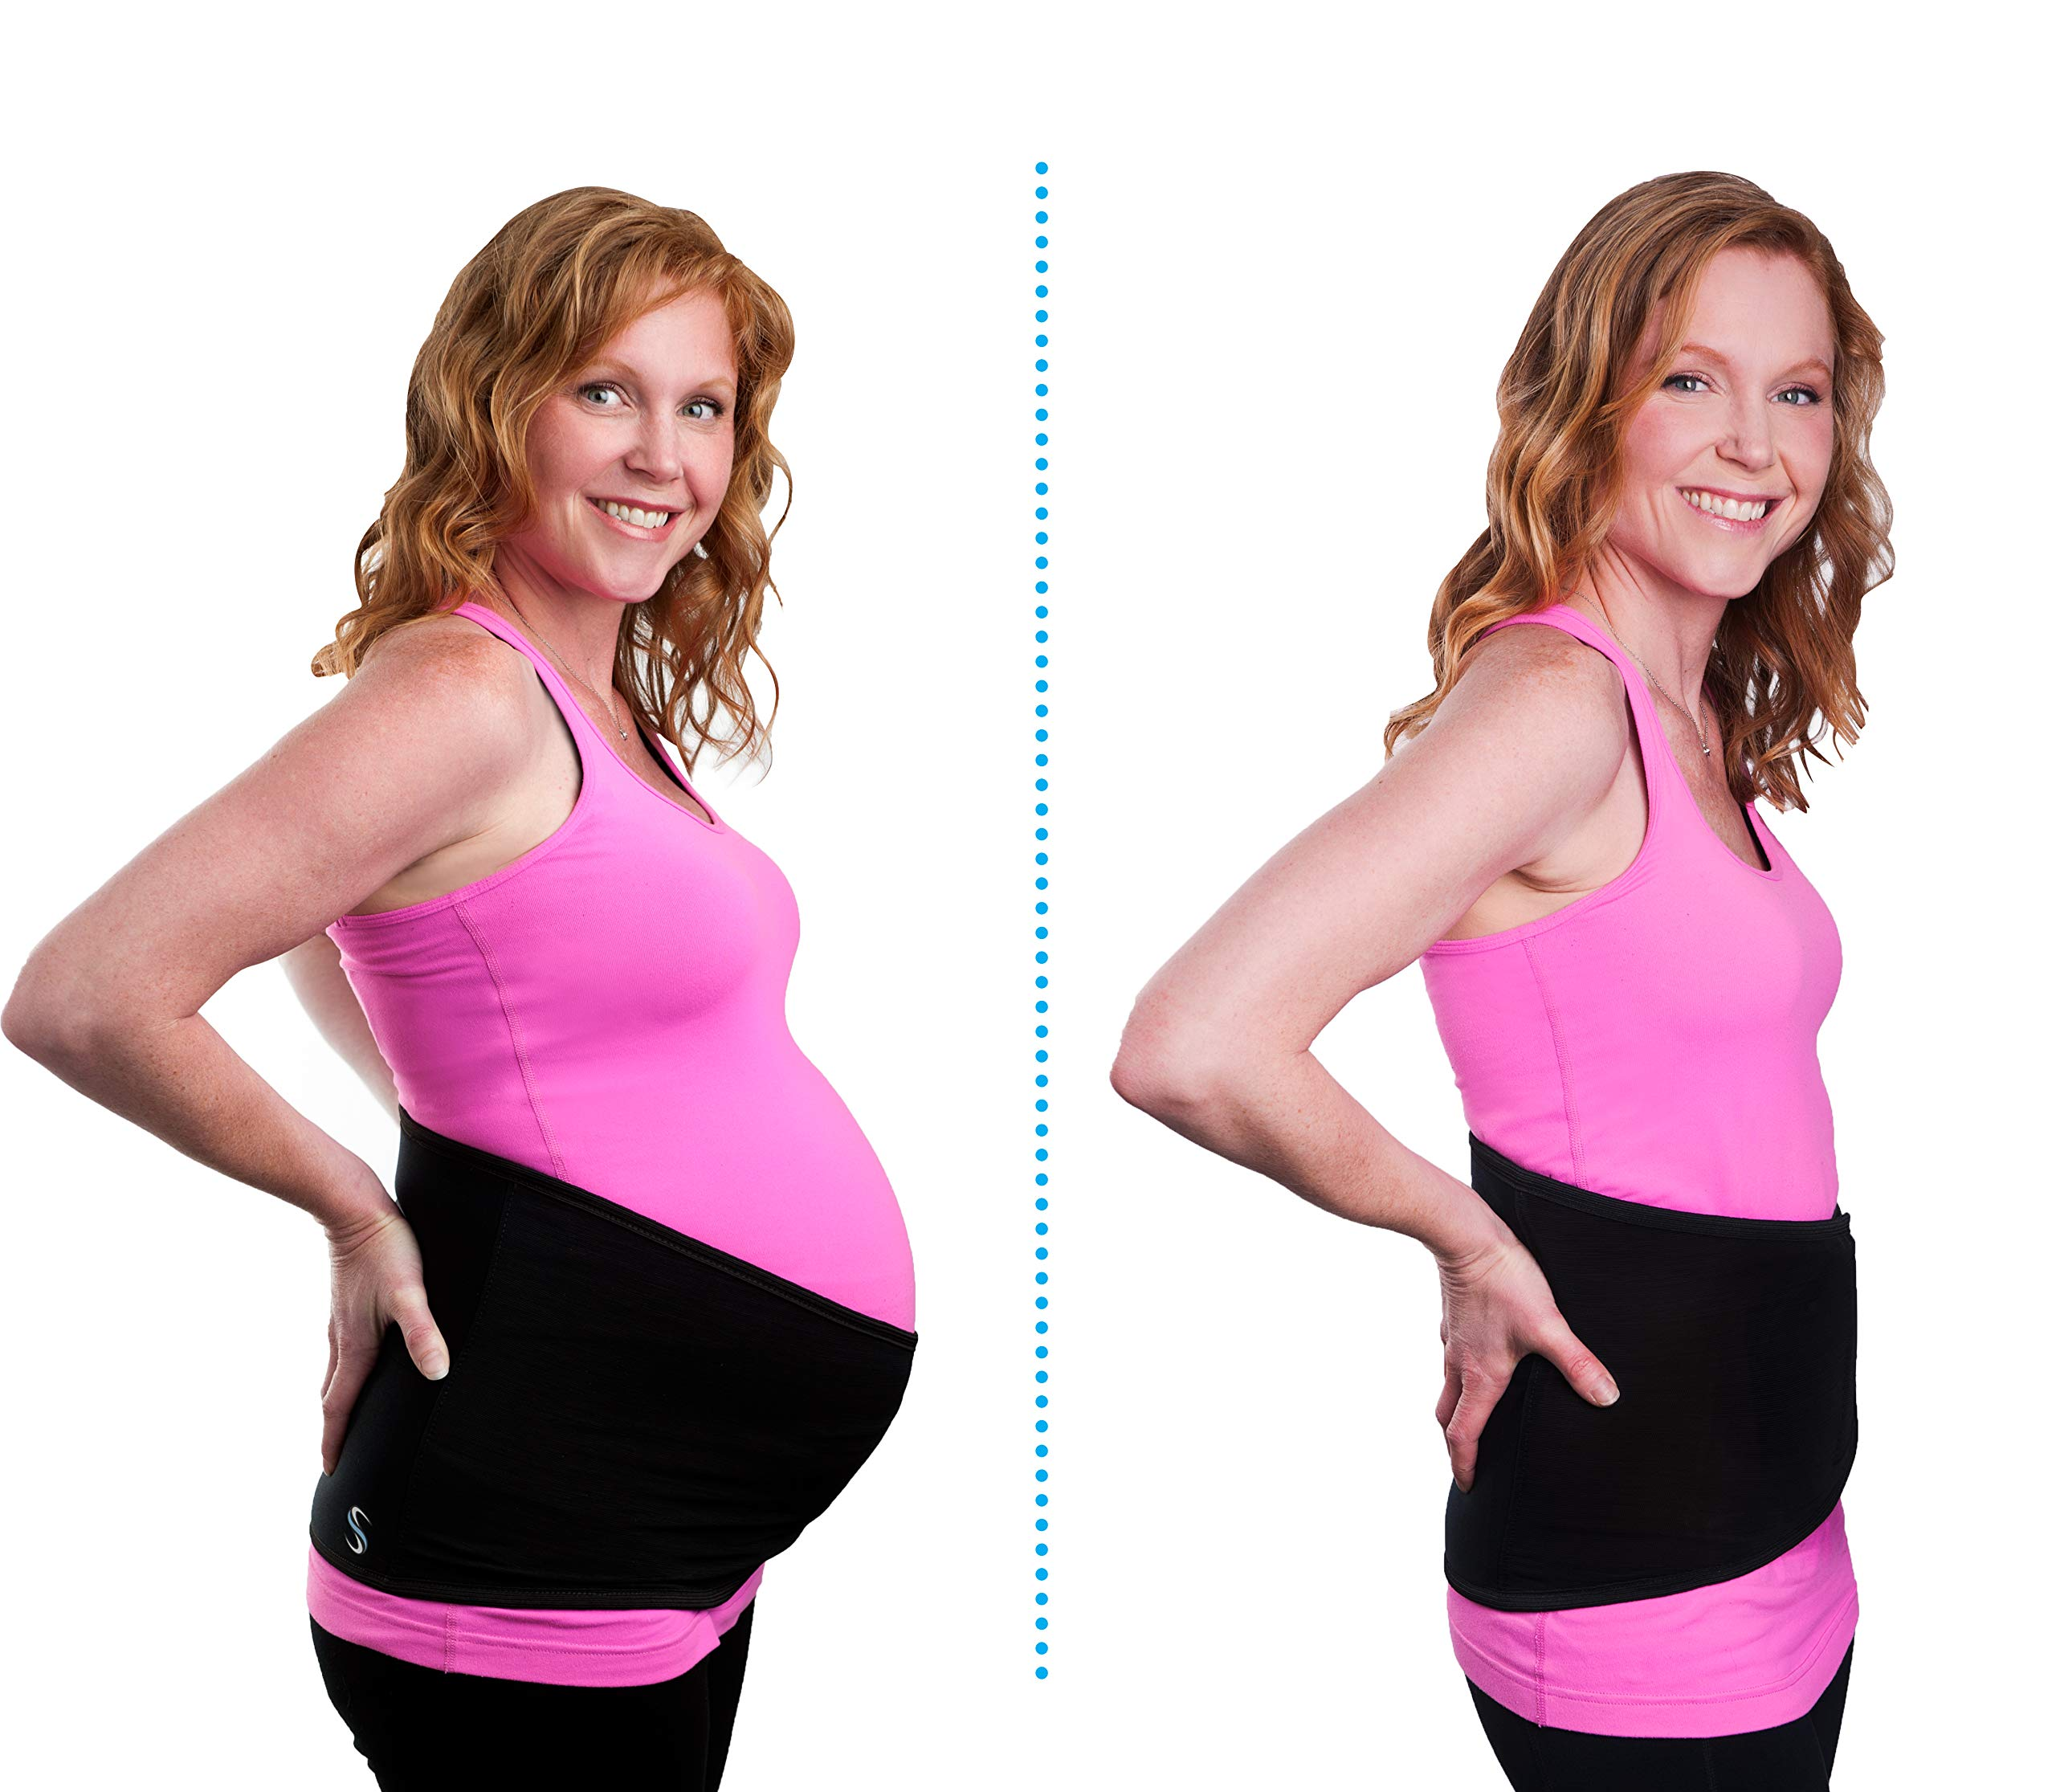 Spand-Ice Maternity + Postpartum 2 in 1 Wrap with Ice and Heat Therapy - Belly Band for Pregnancy Back Pain, Support + Pregnancy Recovery. Includes 2 Cold/Hot Packs + 9'' Extender Strap